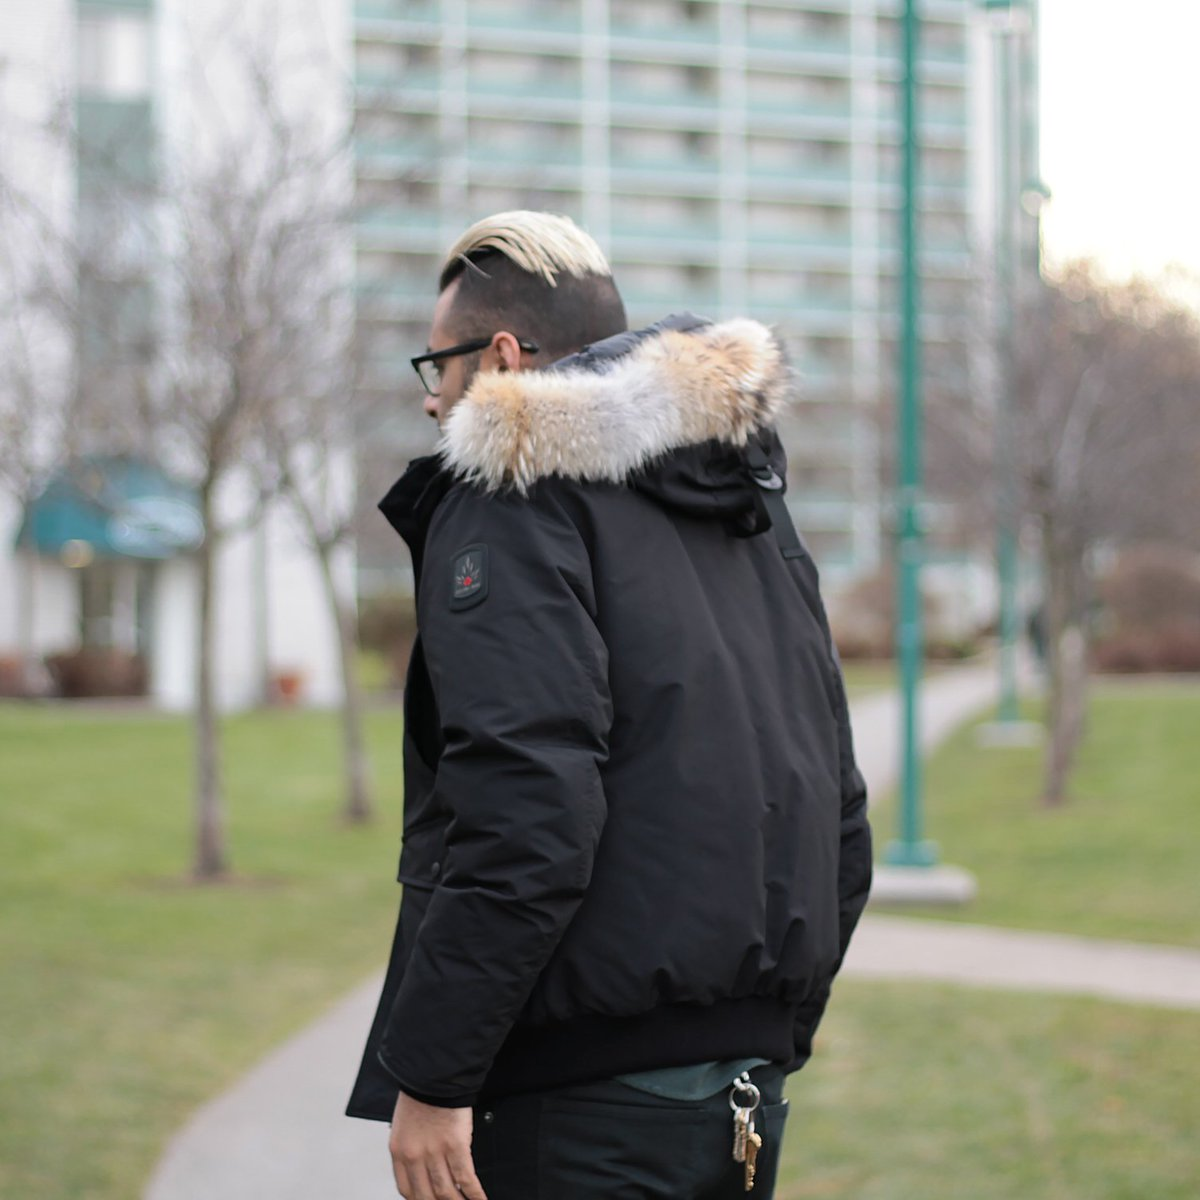 3c004af8c9e The updated Inuvik Bomber from Toronto s Arctic Bay features additional  welt hand warmer pockets on the flap pockets.  arcticbay  madeinCanada   MuddyGeorge ...